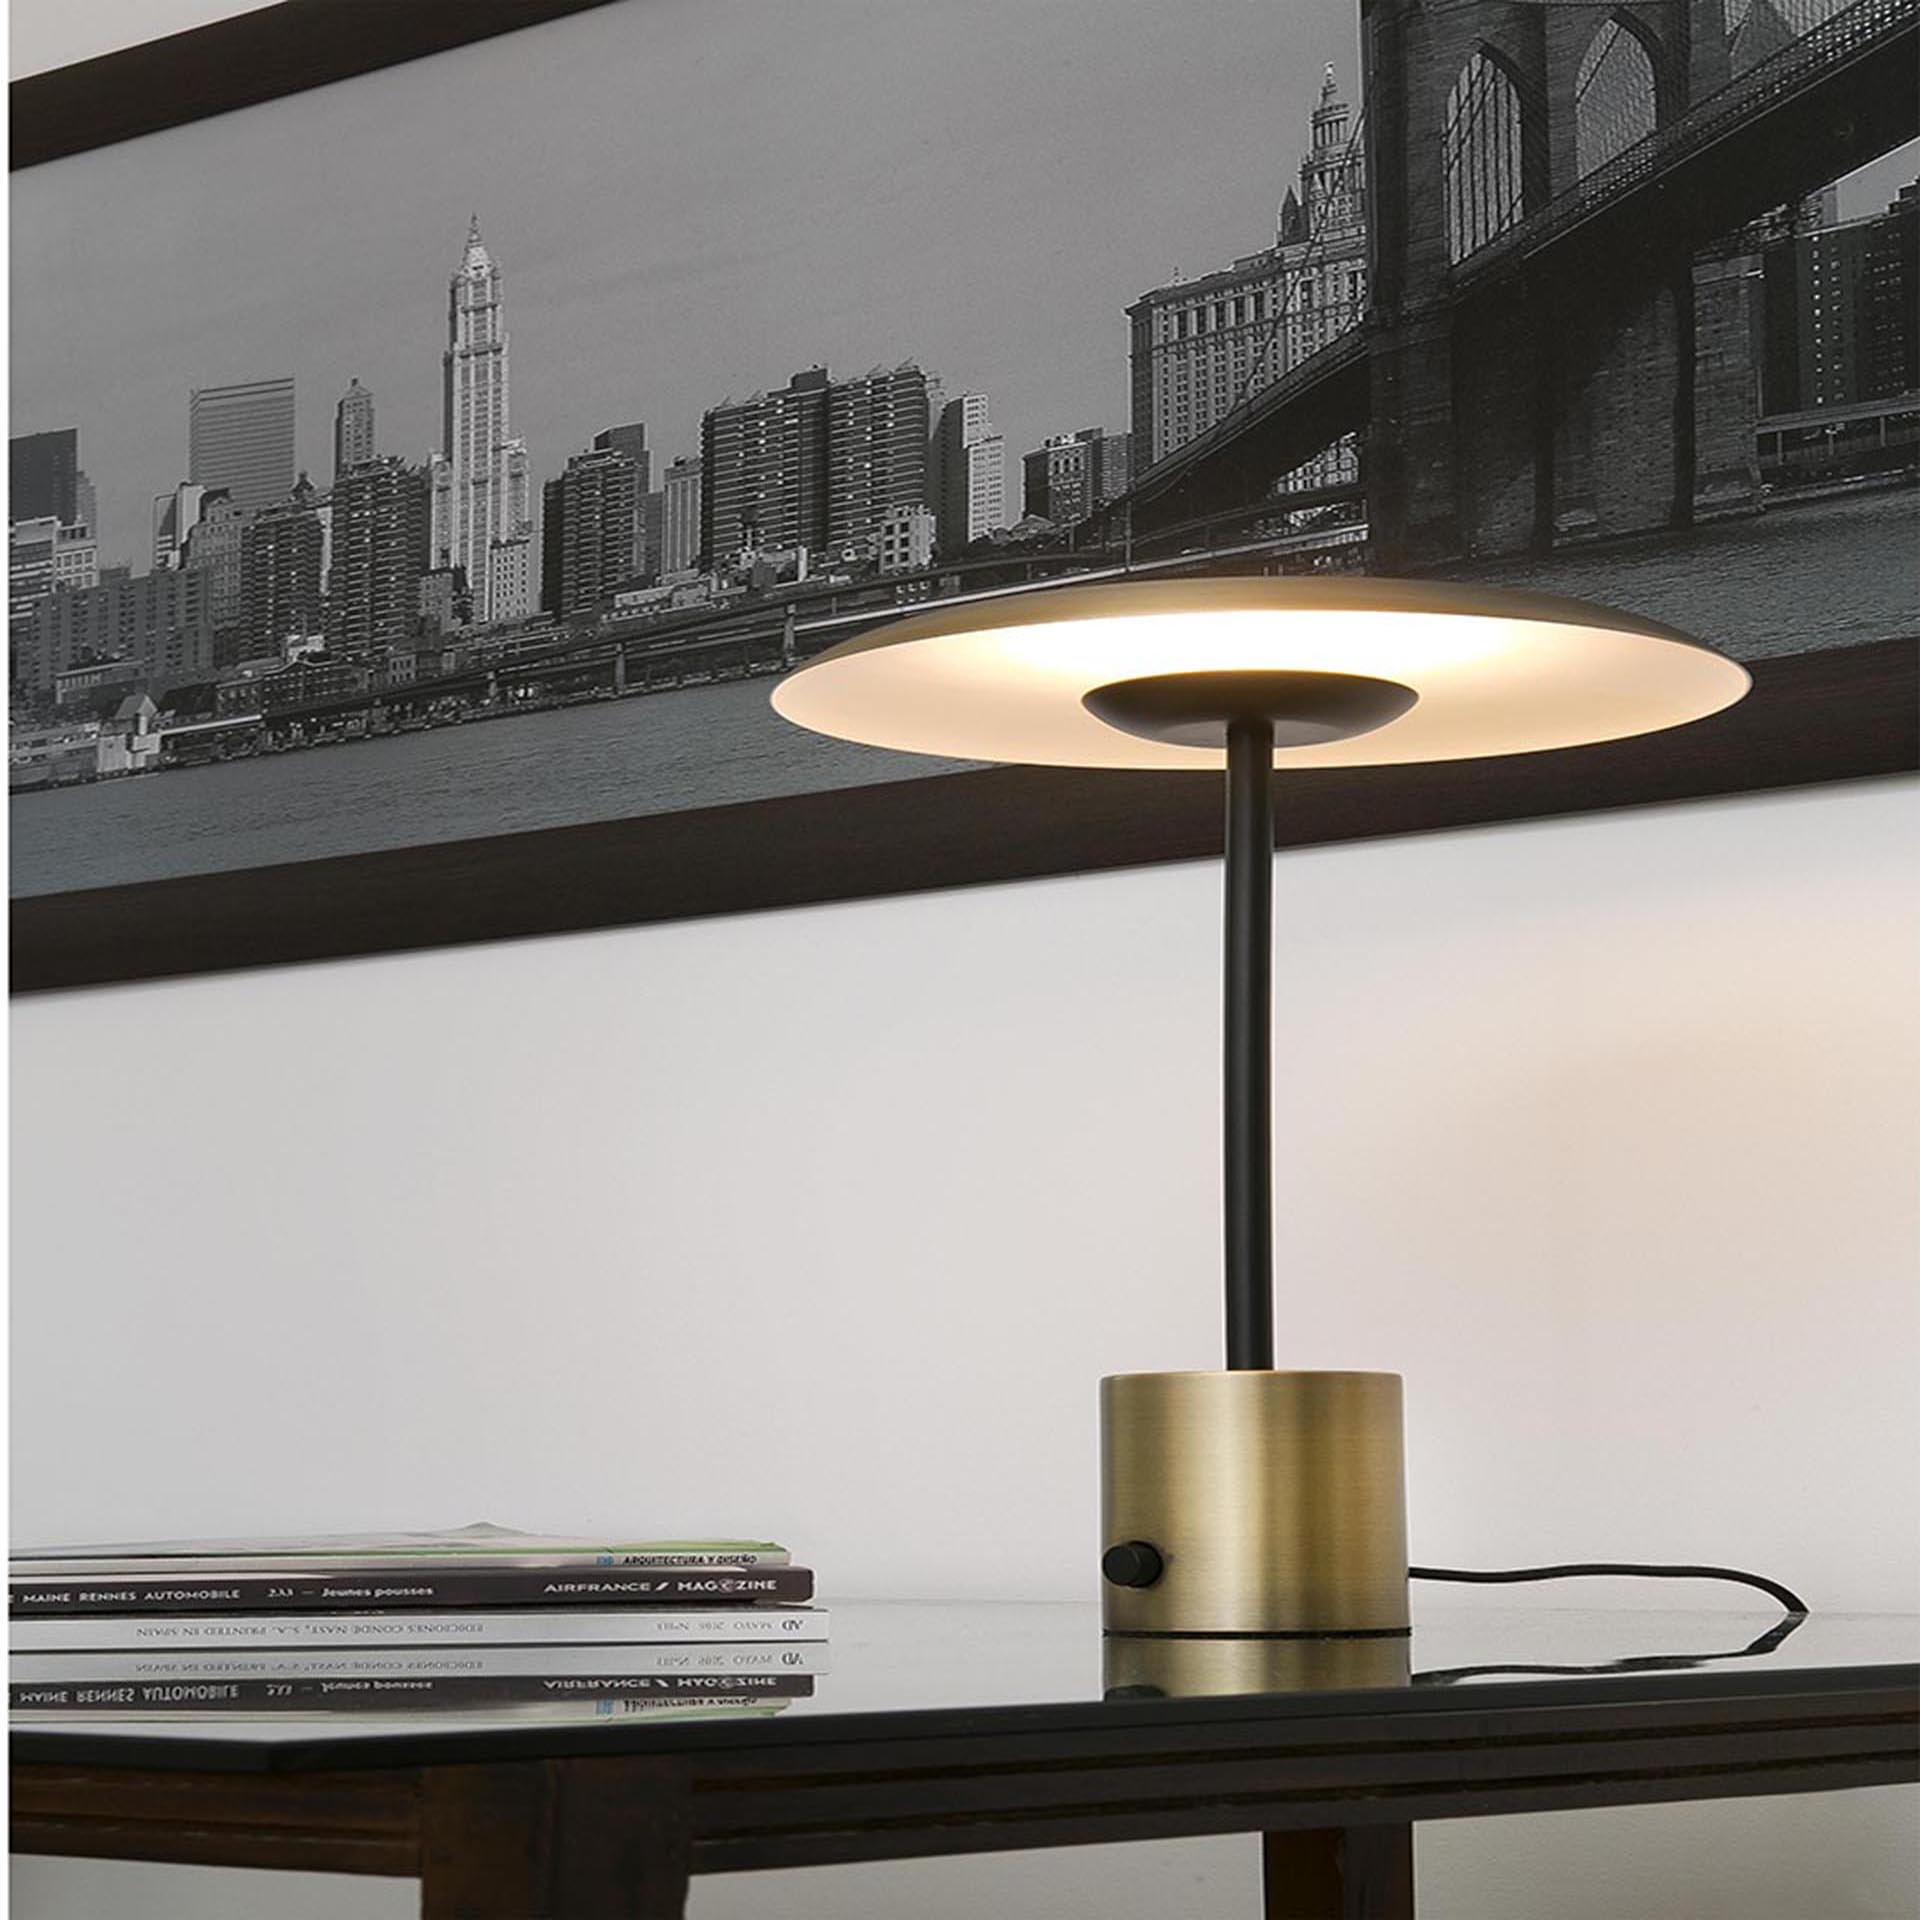 More information of HOSHI table lamp